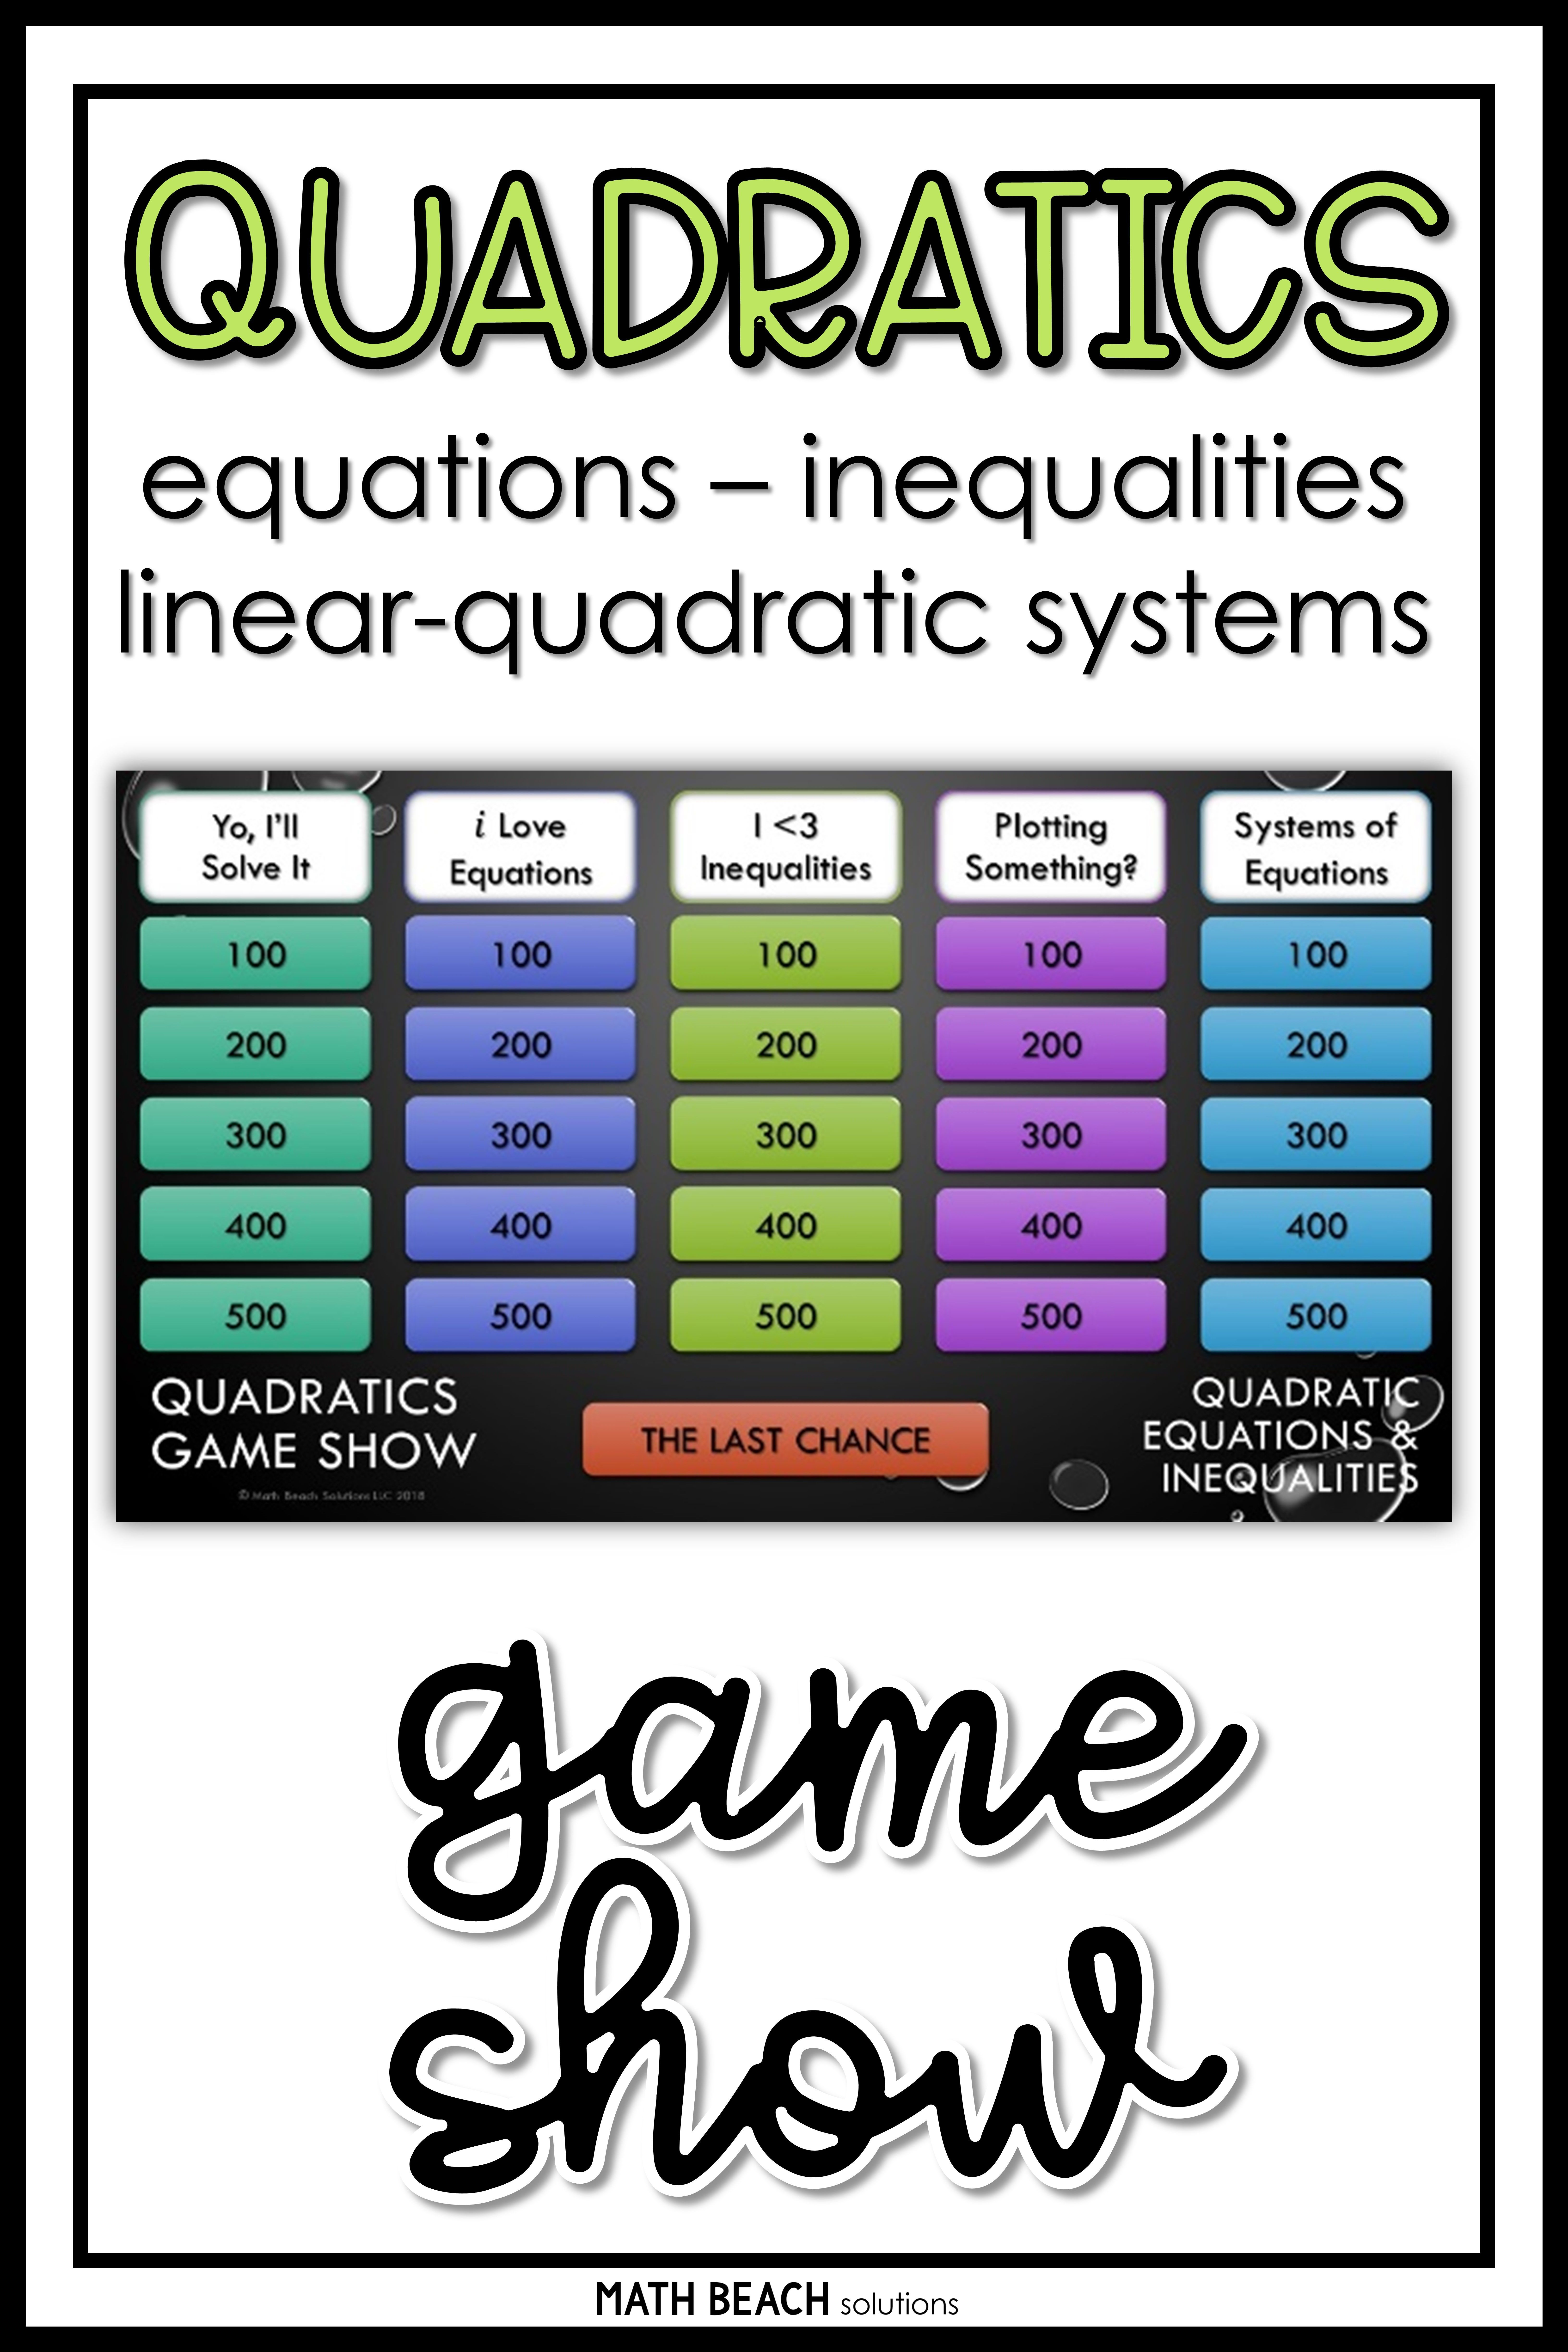 Game Shows Can Be A Great Way To Engage Algebra Students With An Otherwise Tedious But Important Topic I Quadratics Factoring Quadratics Quadratic Equation [ 9792 x 6528 Pixel ]